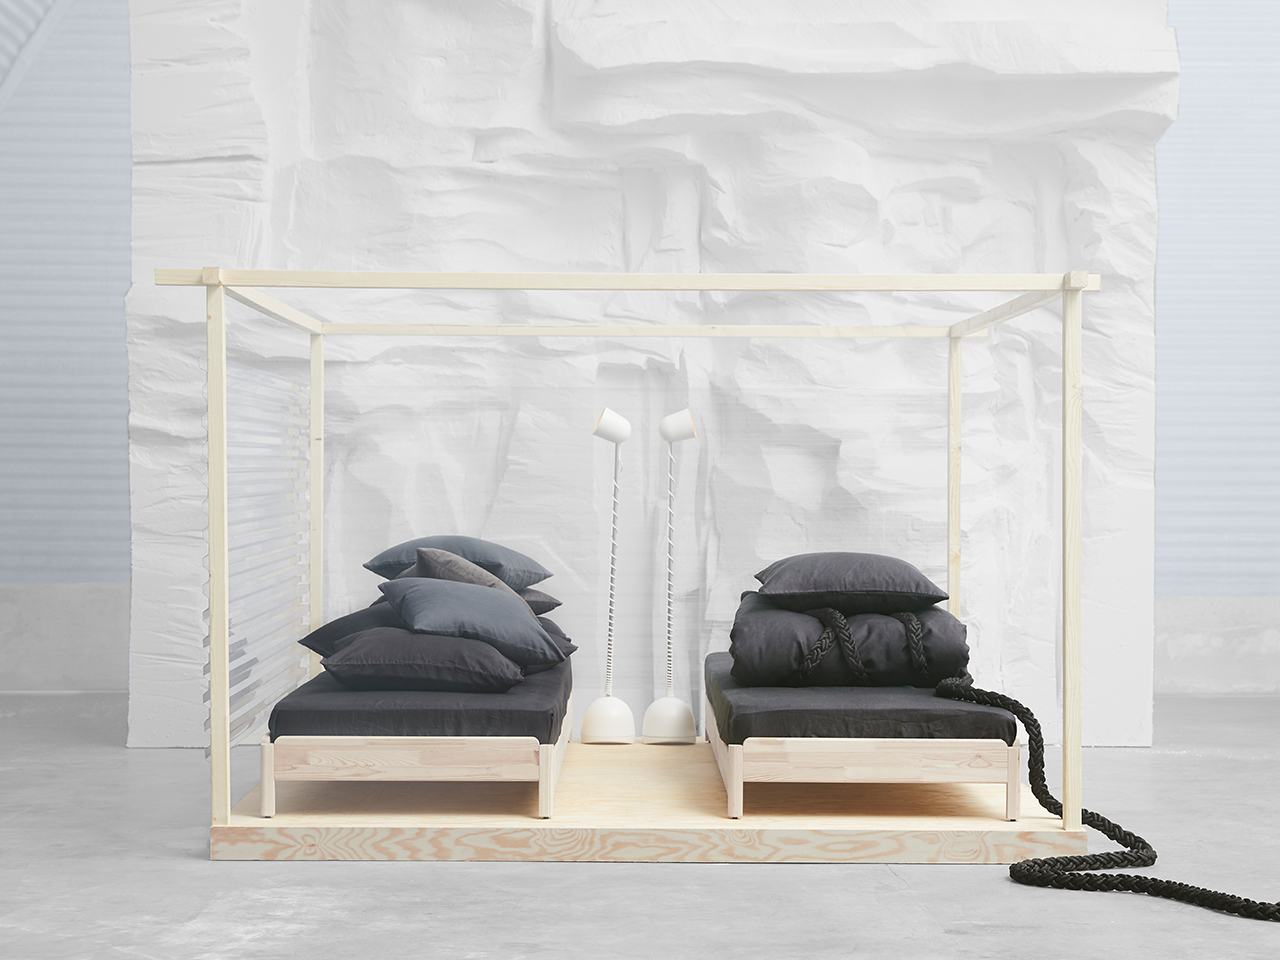 Fold Away Bed Ikea The 13 Best Finds From Ikea S New Fall Line Chatelaine